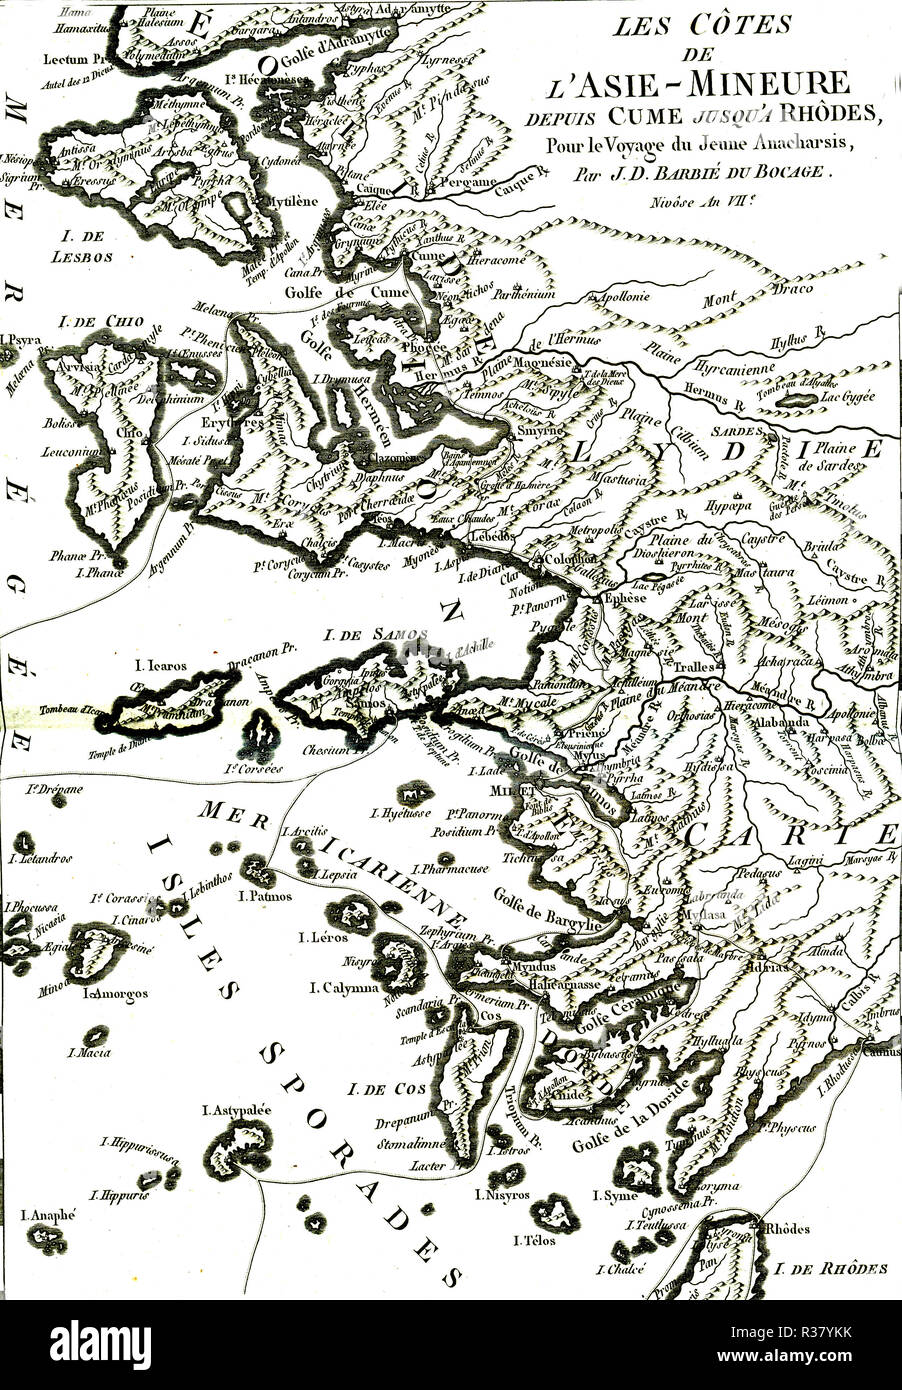 Ancient Greece map, Travel of the young Anacharsis in Minor Asia coast, 1785, France - Stock Image